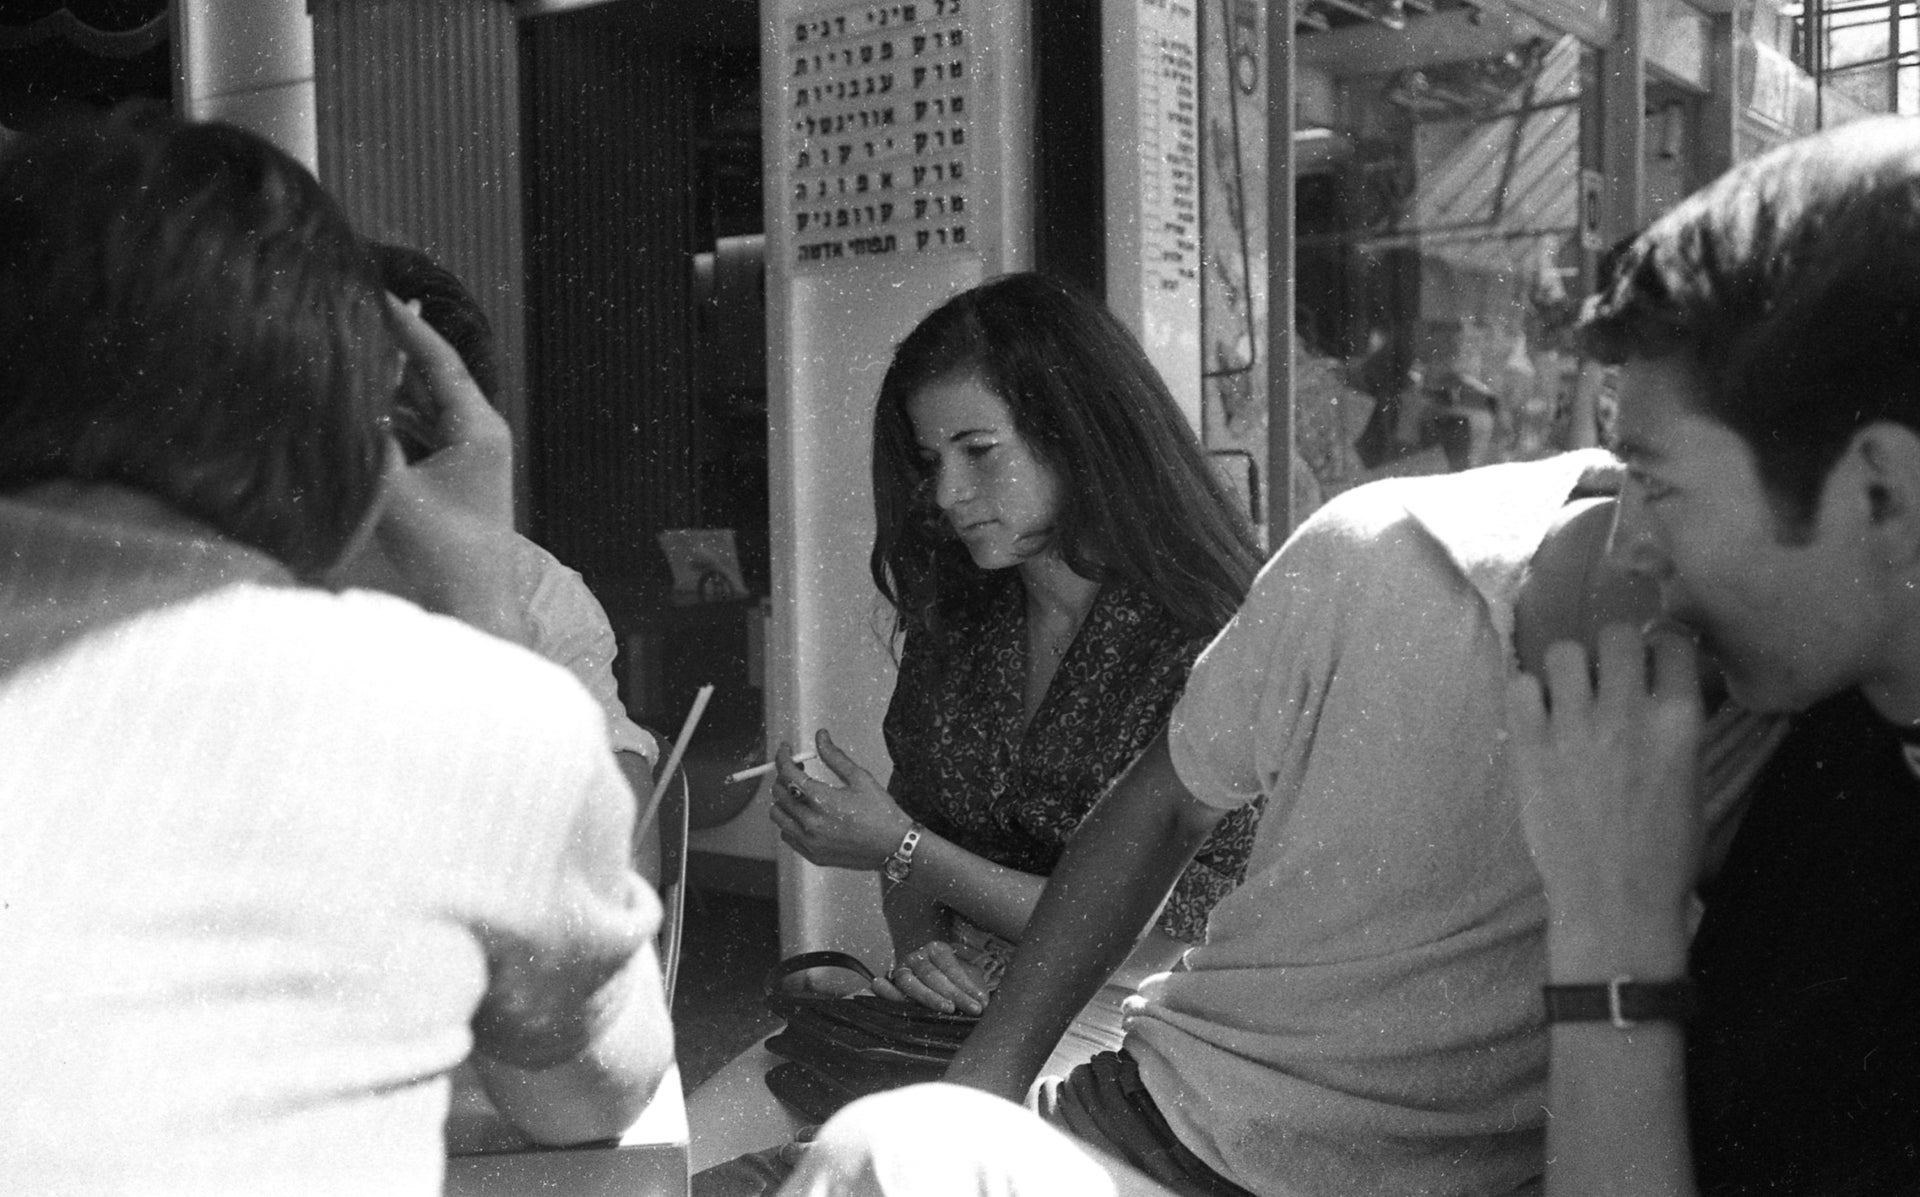 Israeli bohemian cafe culture in the 1960s.